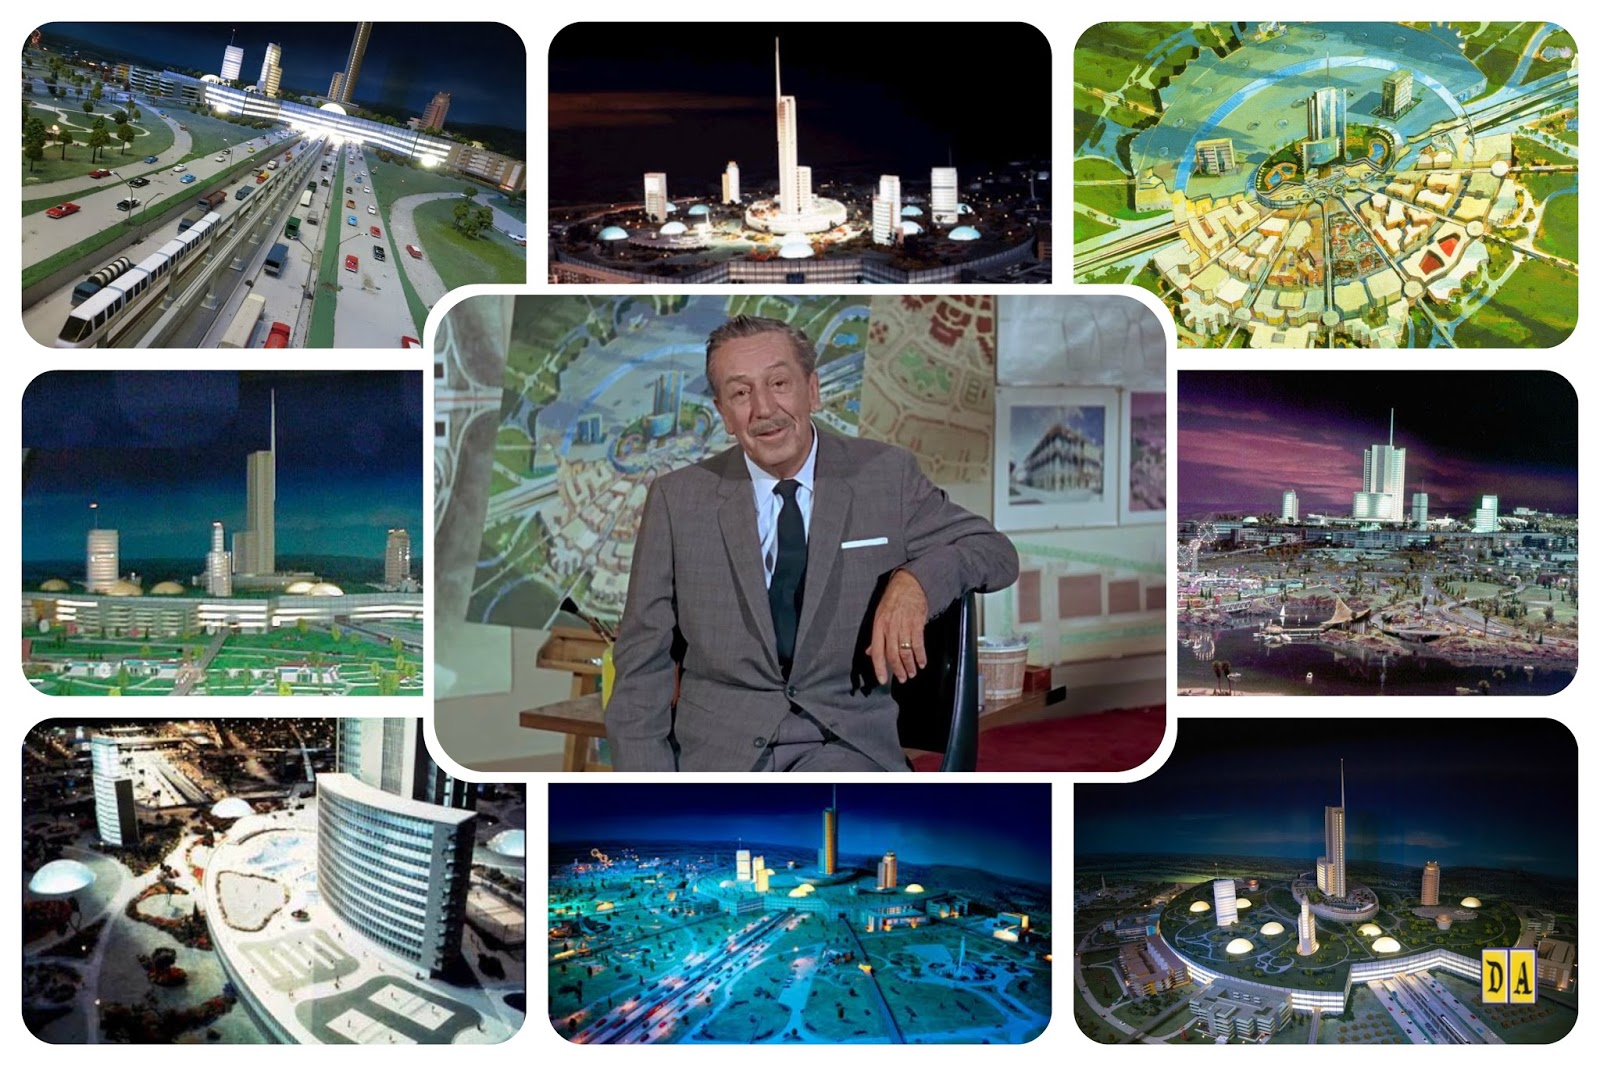 walt disney world future plans In 2013, disney's frozen captured the hearts and minds of fans worldwide new plans were just filed by disney requesting a permit with the south florida water management district and the reedy creek improvement district.